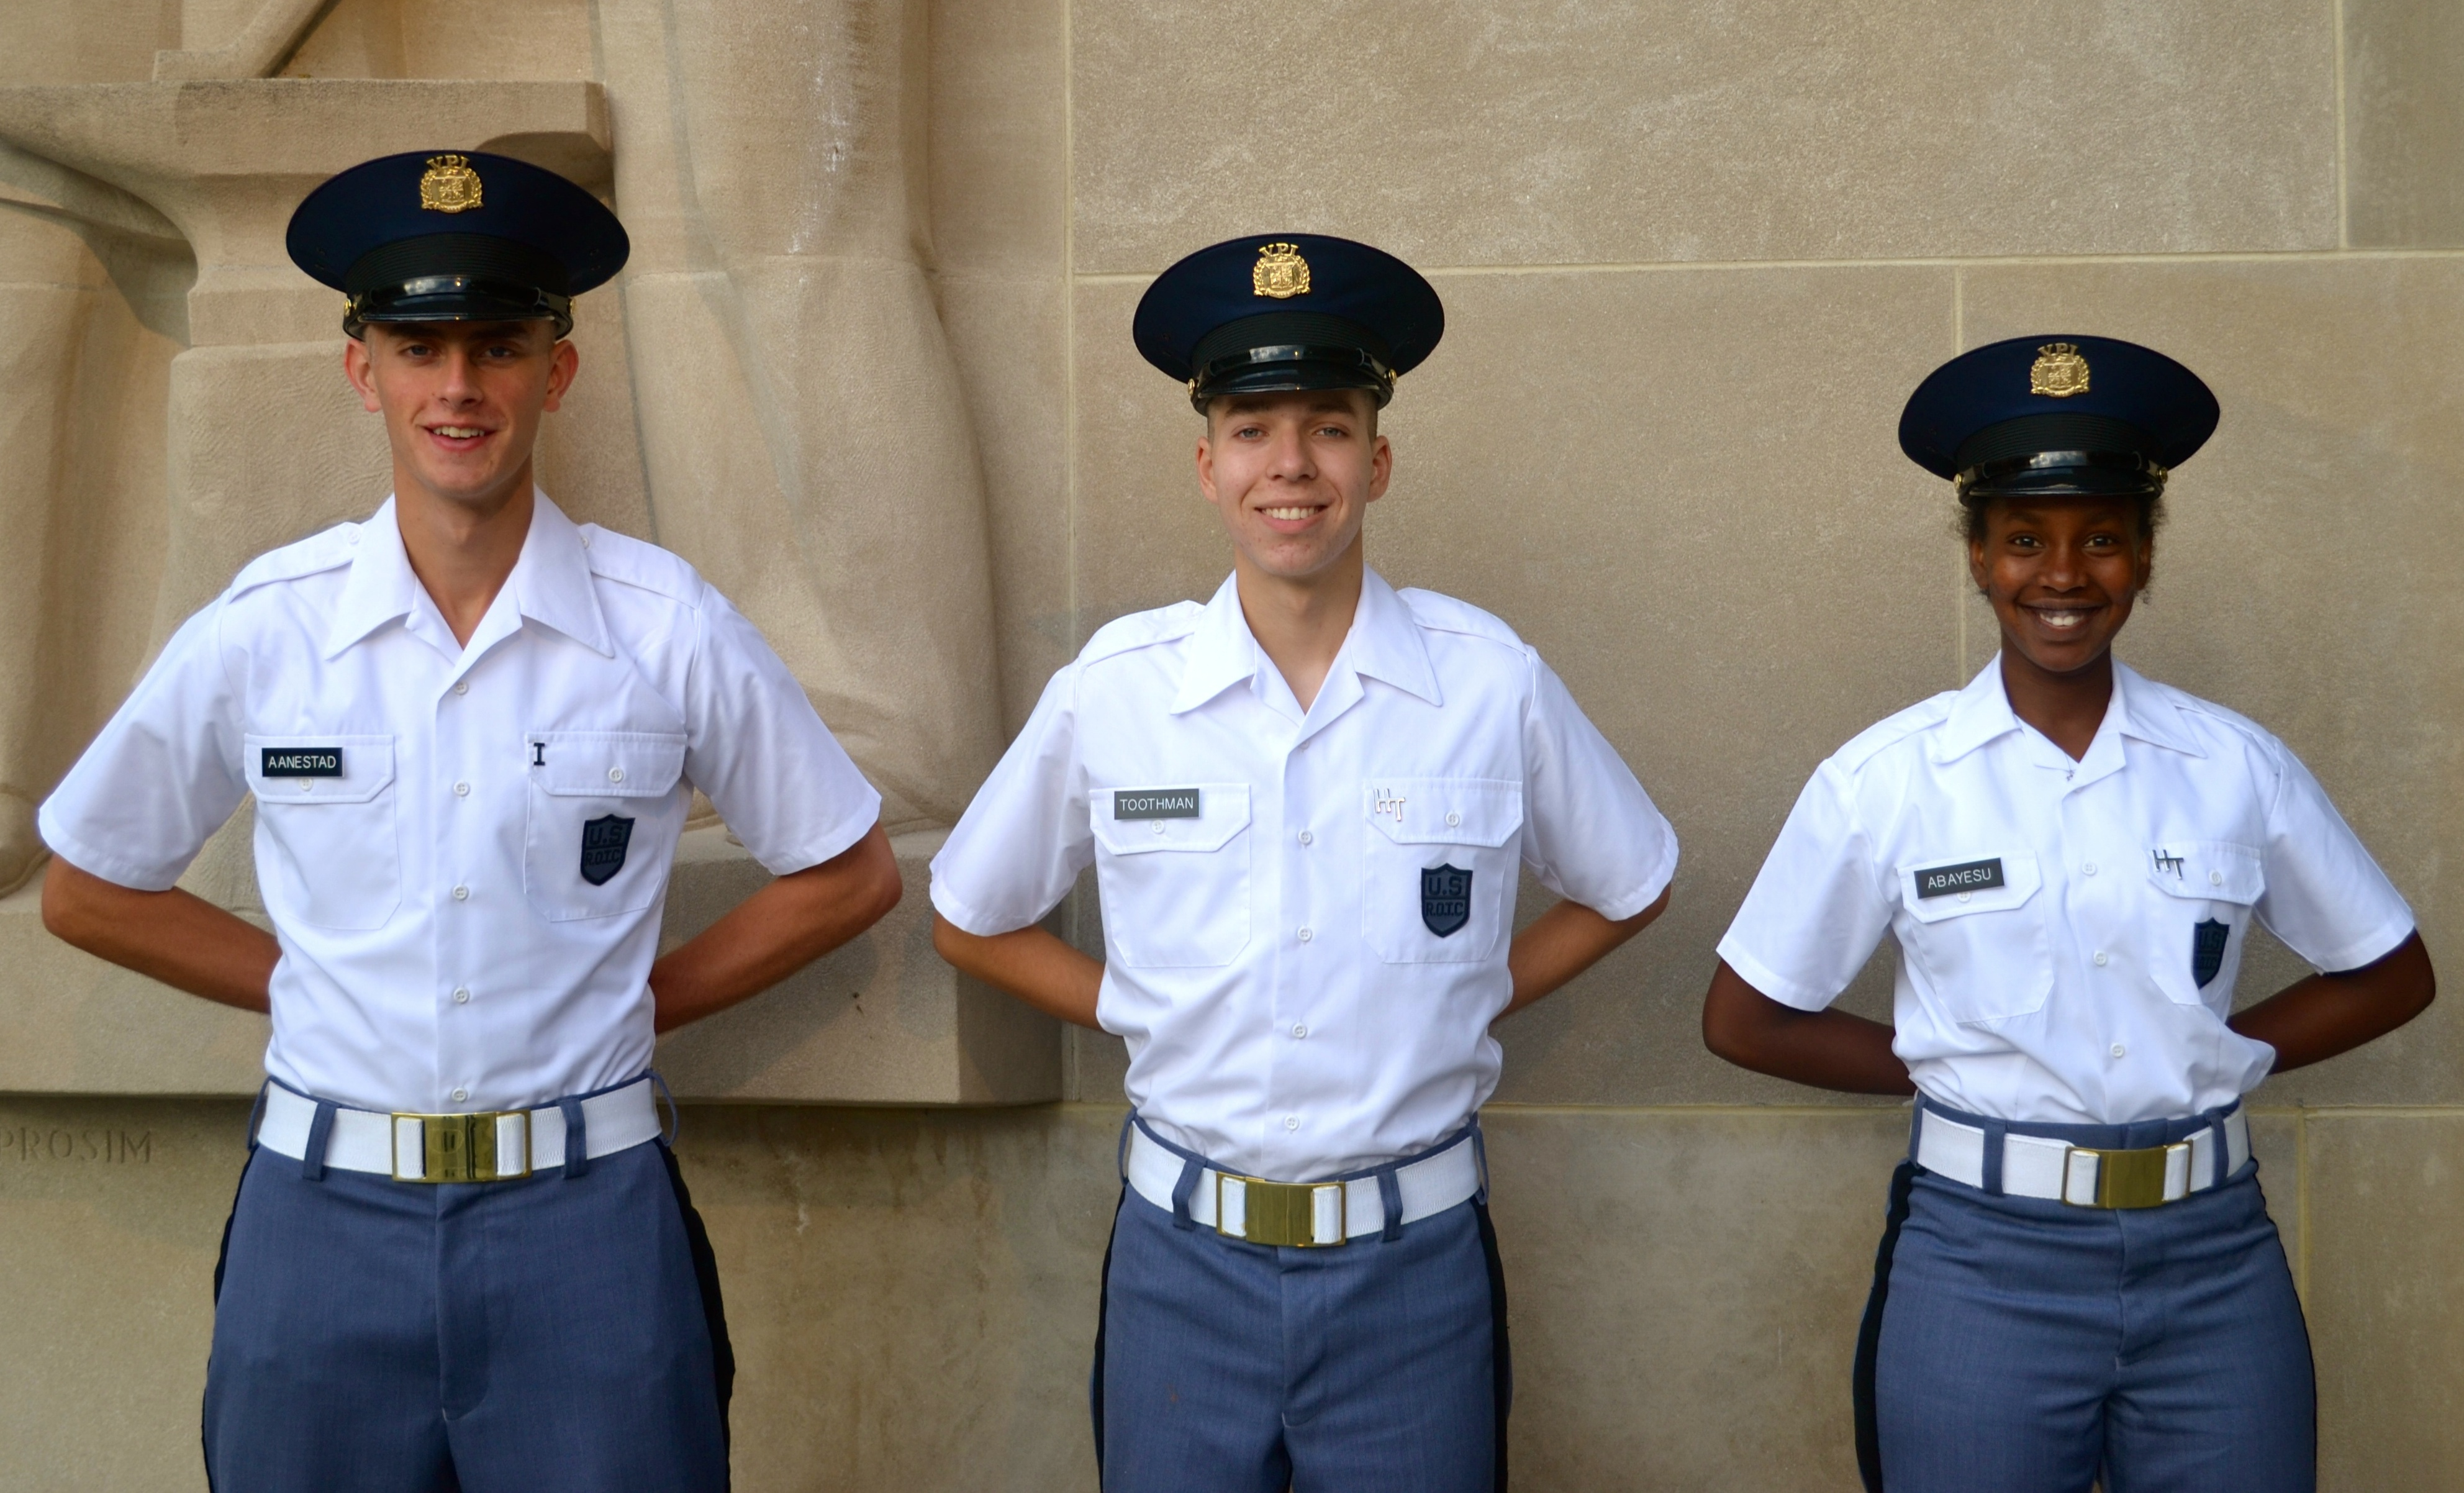 From left to right are Cadets Paul Aanestad, Zachary Toothman, and Precious Abayesu standing in front of the Pylons.